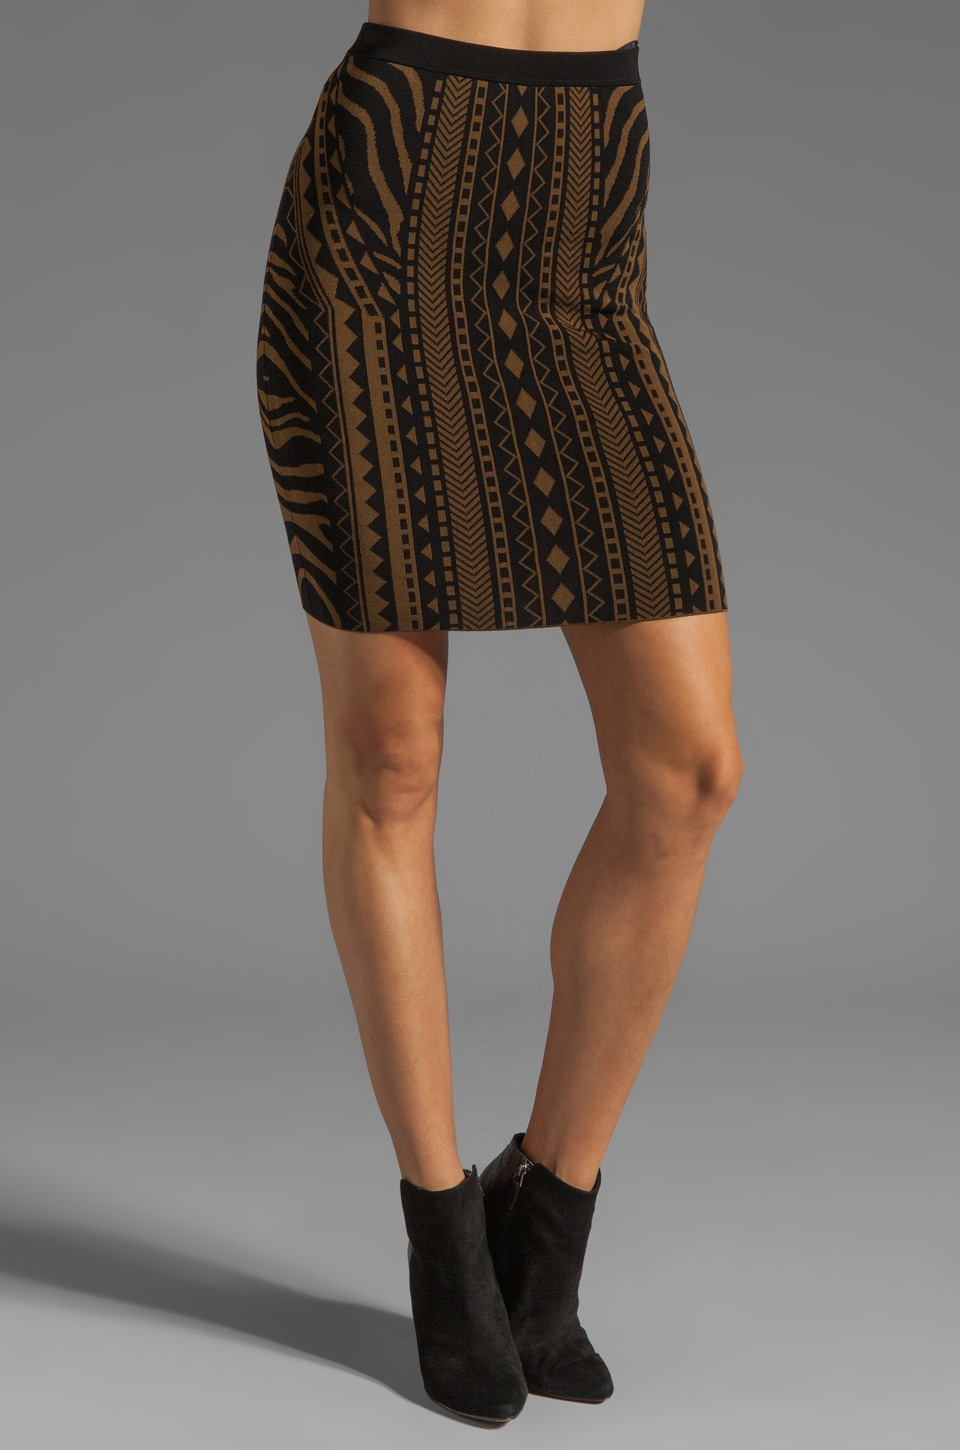 Torn by Ronny Kobo Celine Tribal Skirt in Khaki/Black